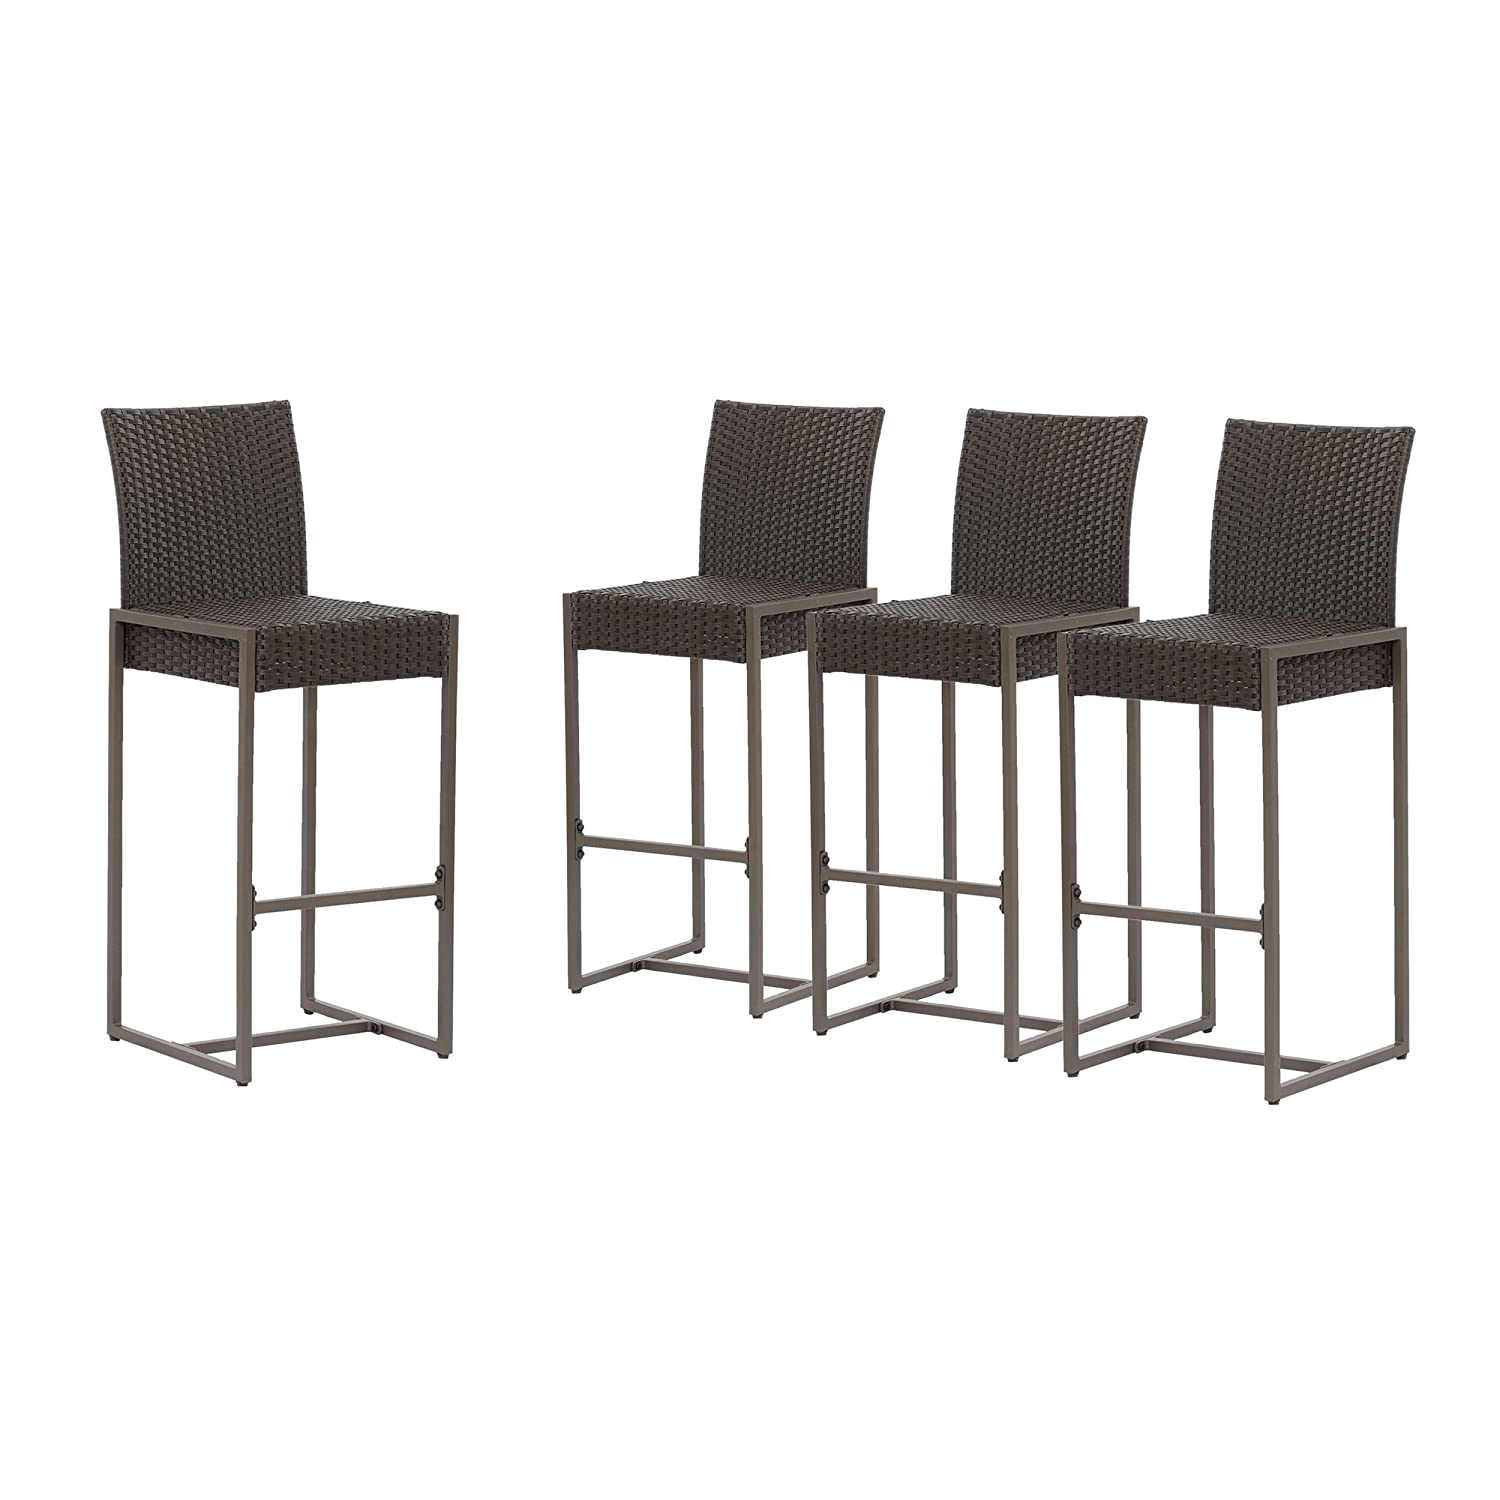 Christopher Knight Home 305162 Kelly Outdoor Wicker 30 Inch Barstool Set of 4 , Dark Brown